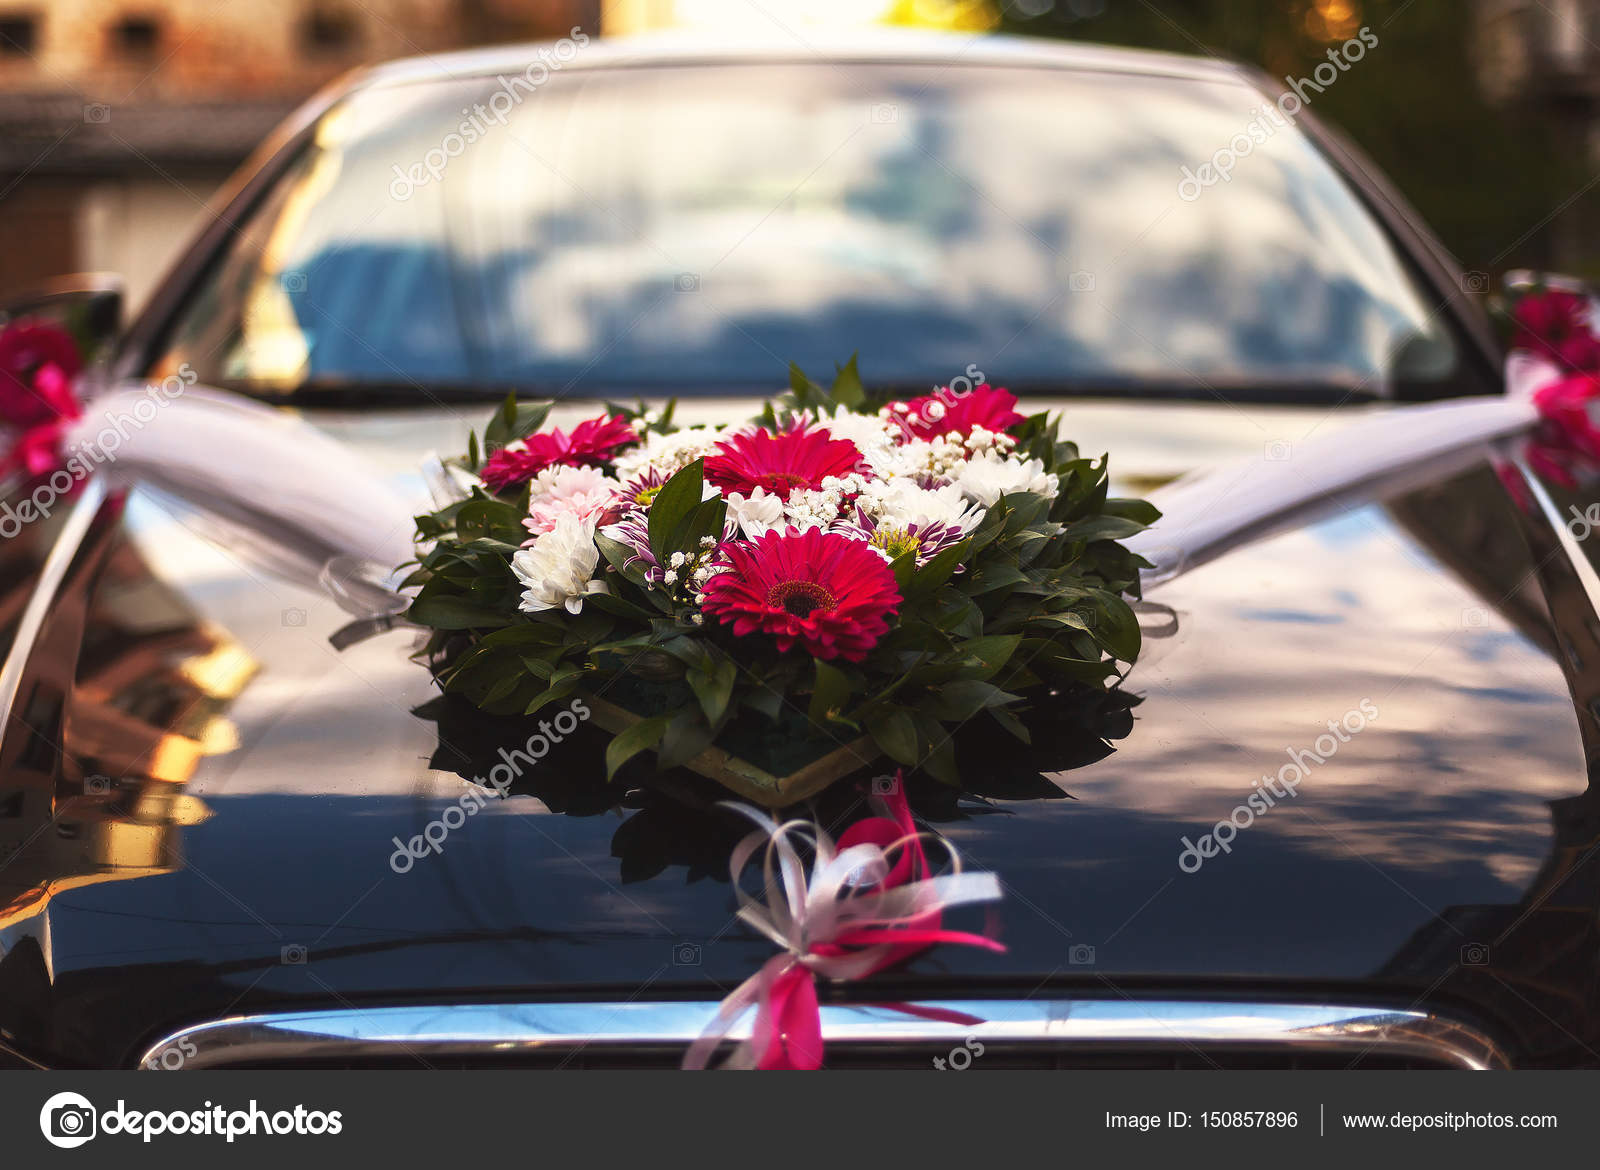 Car Decoration Weding Wedding Car Decoration Stock Photo Krsmanovic 150857896